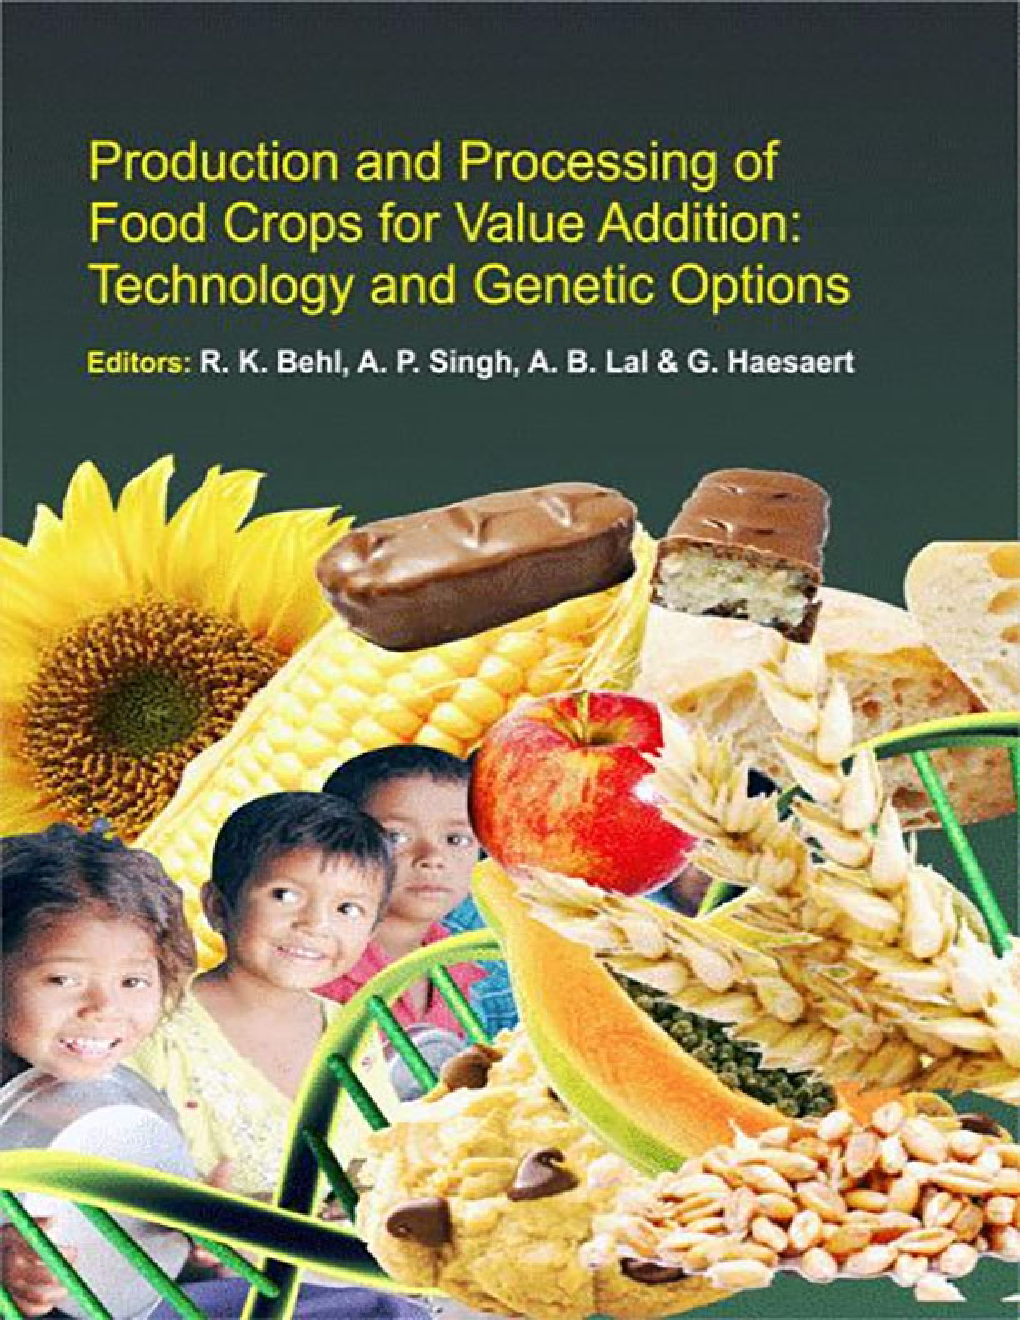 Production and Processing of Food Crop for Value Addition Technology and Genetic Option - Page 1